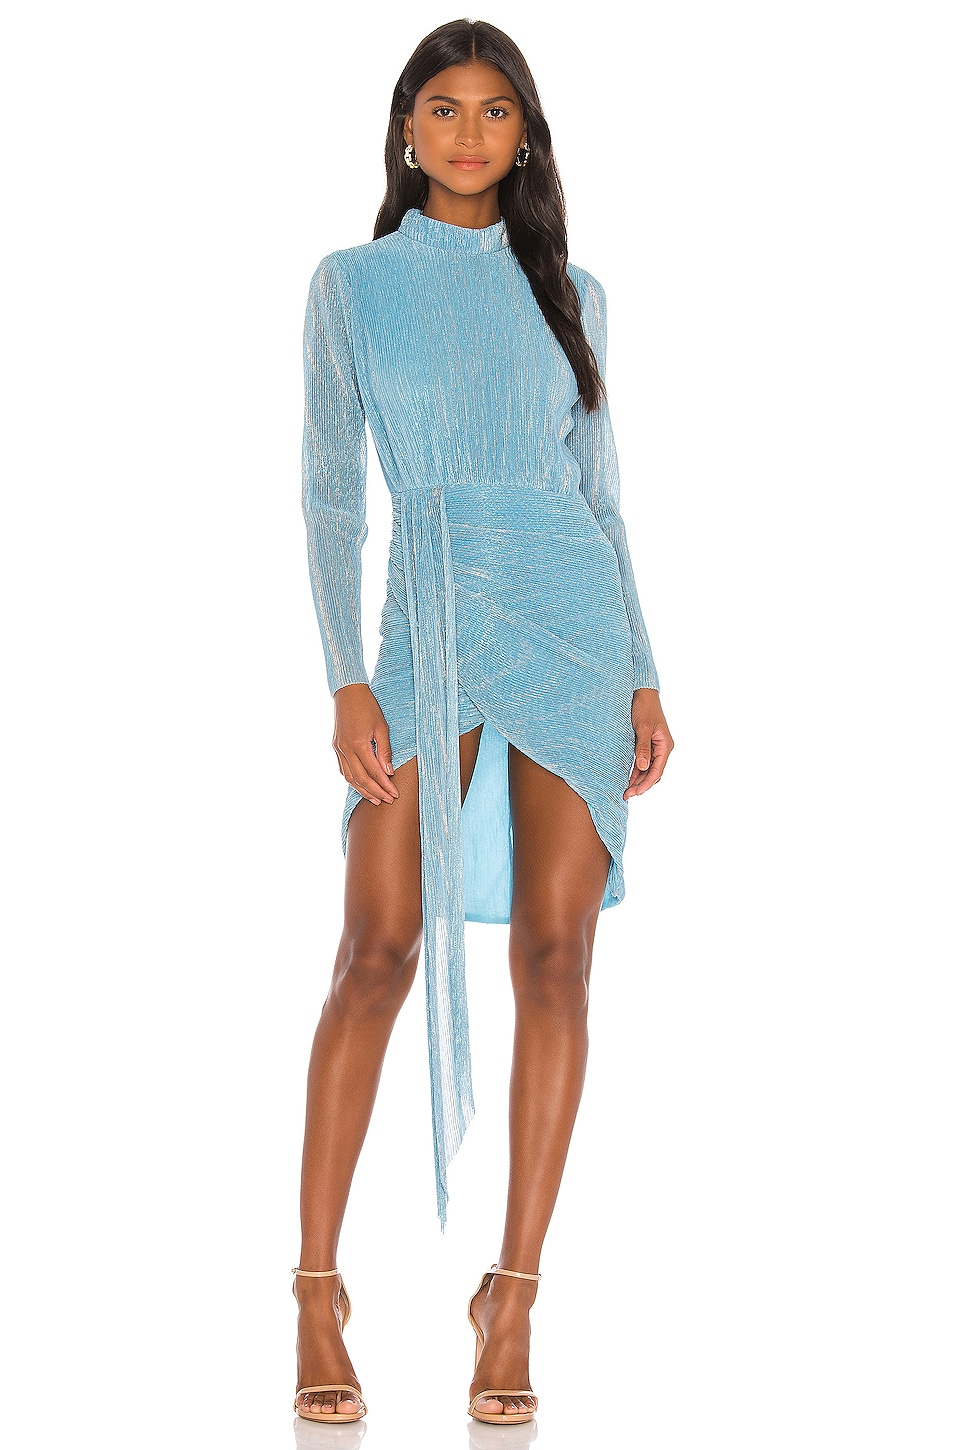 Atoir The Azalea Dress in Blue Mist